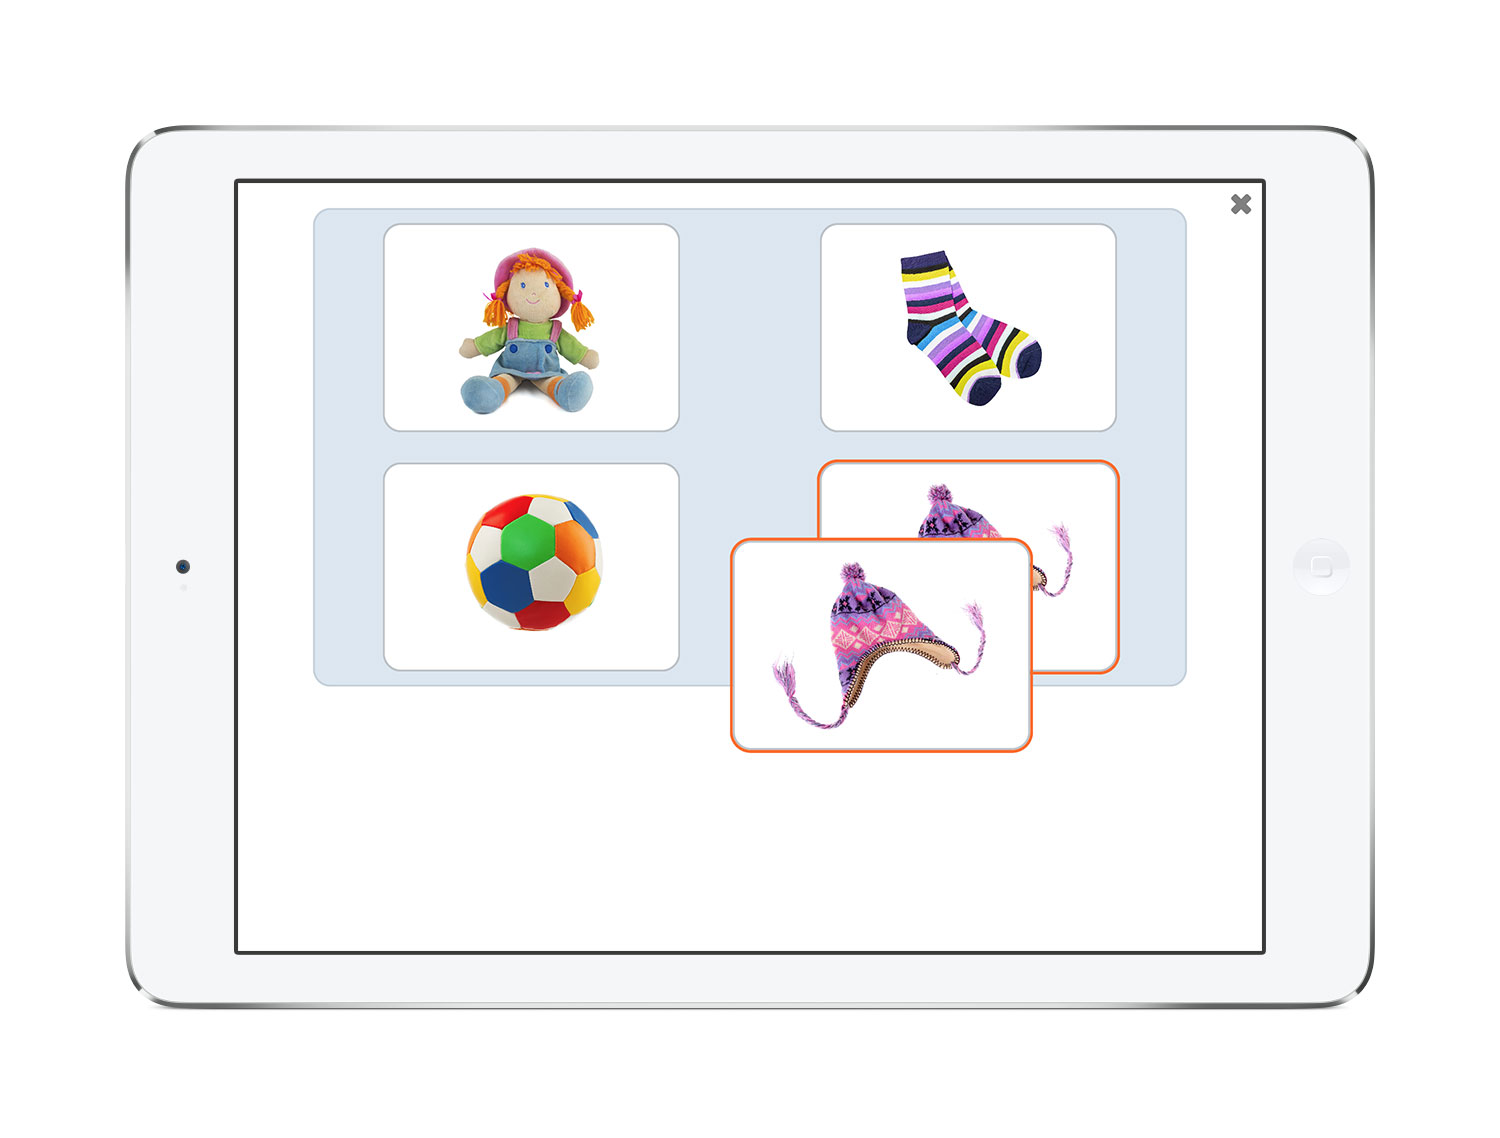 Picture of See and Learn First Vocabulary 1 iPad app